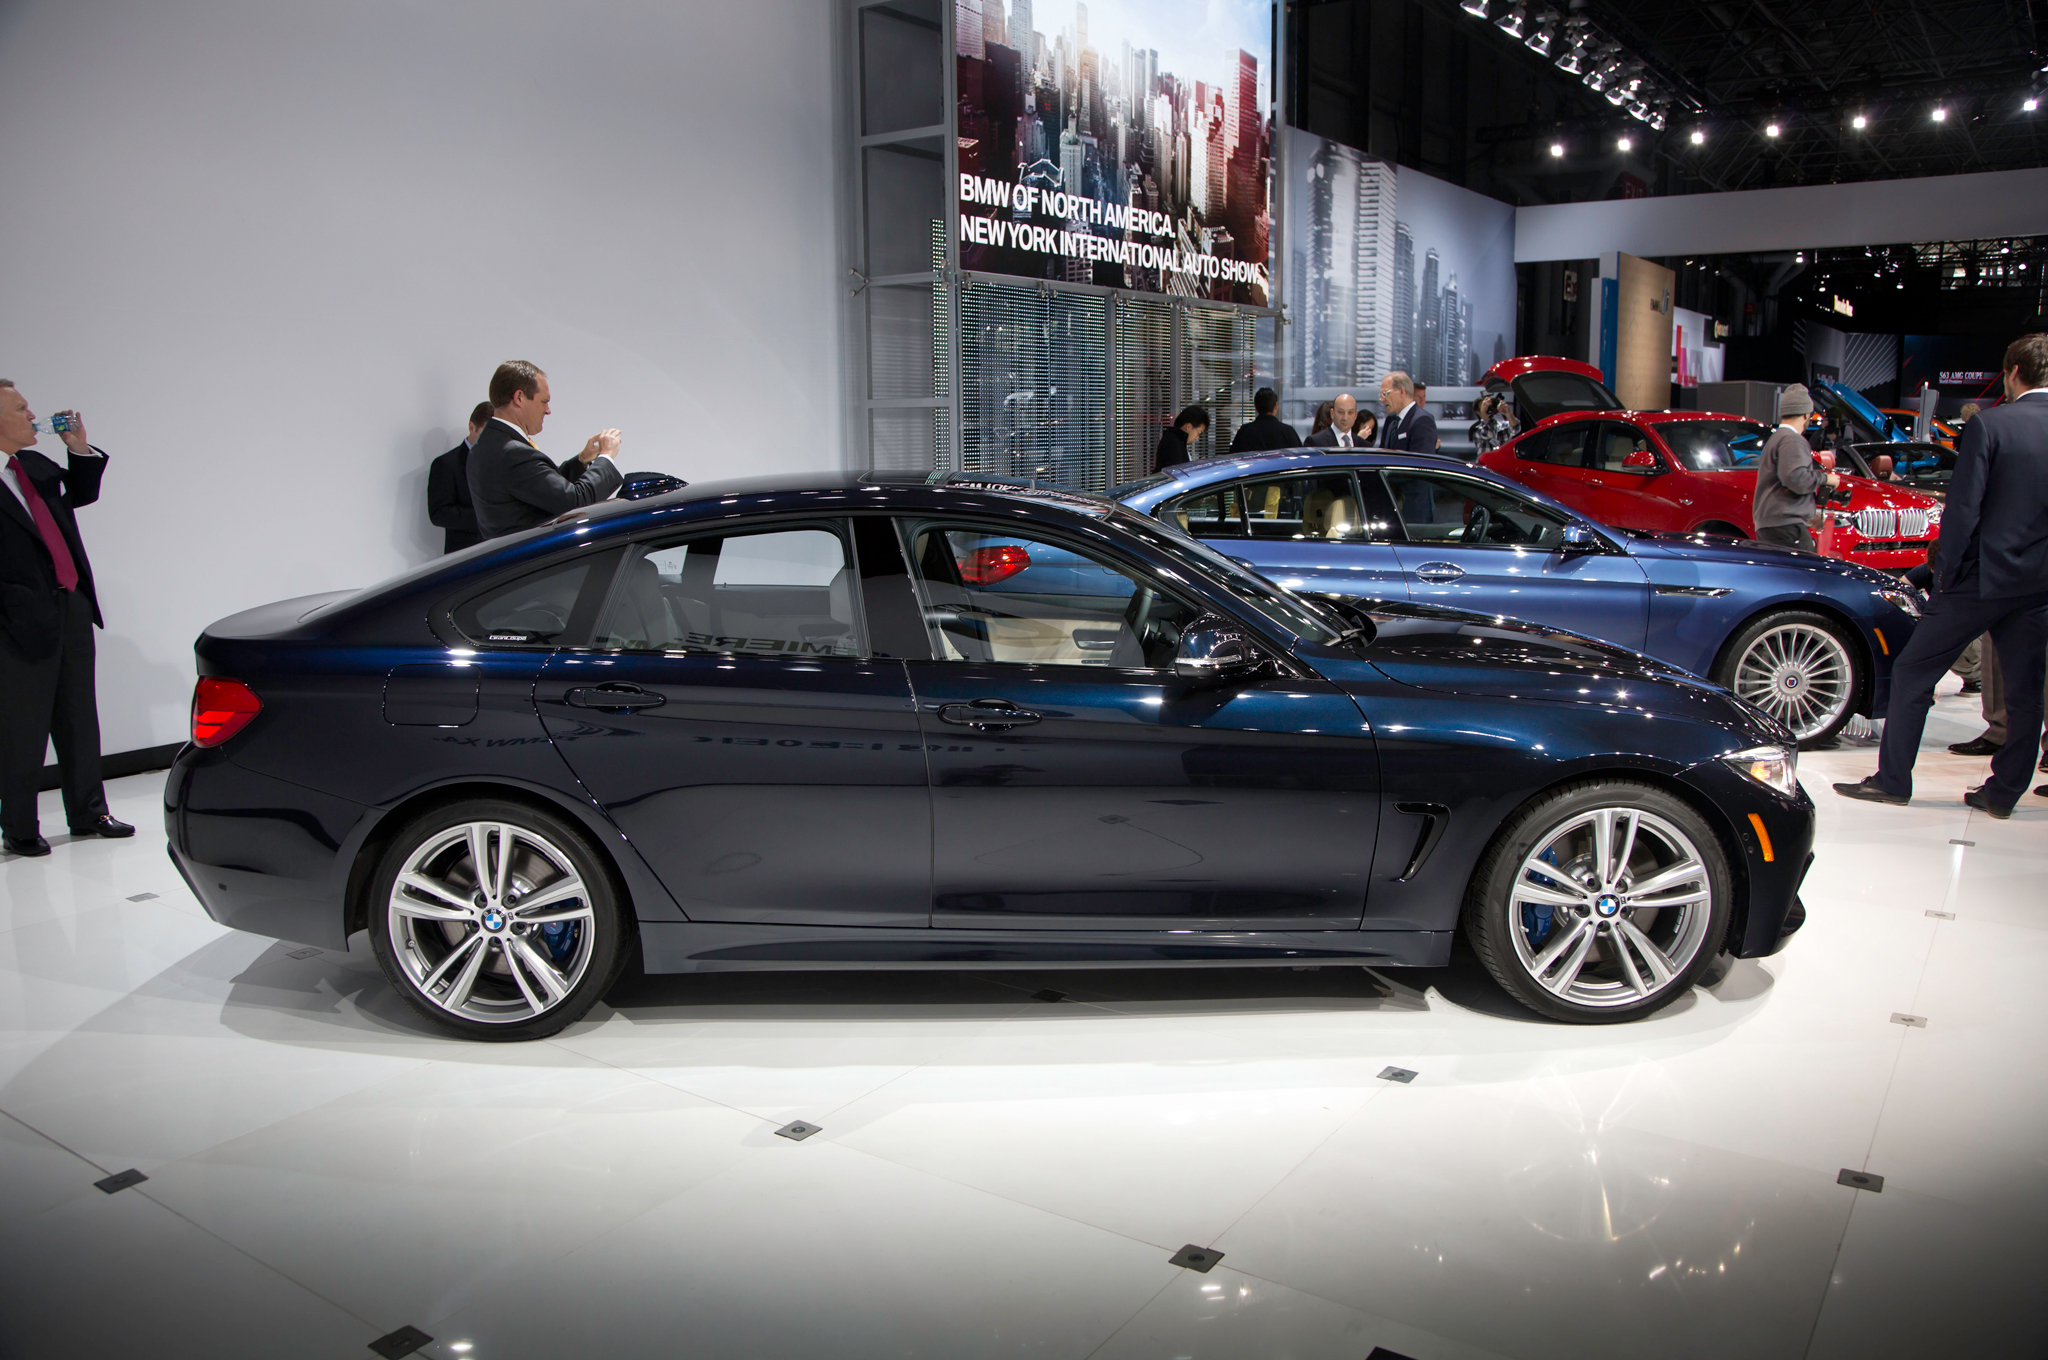 2015 Bmw 4 Series Gran Coupe #2